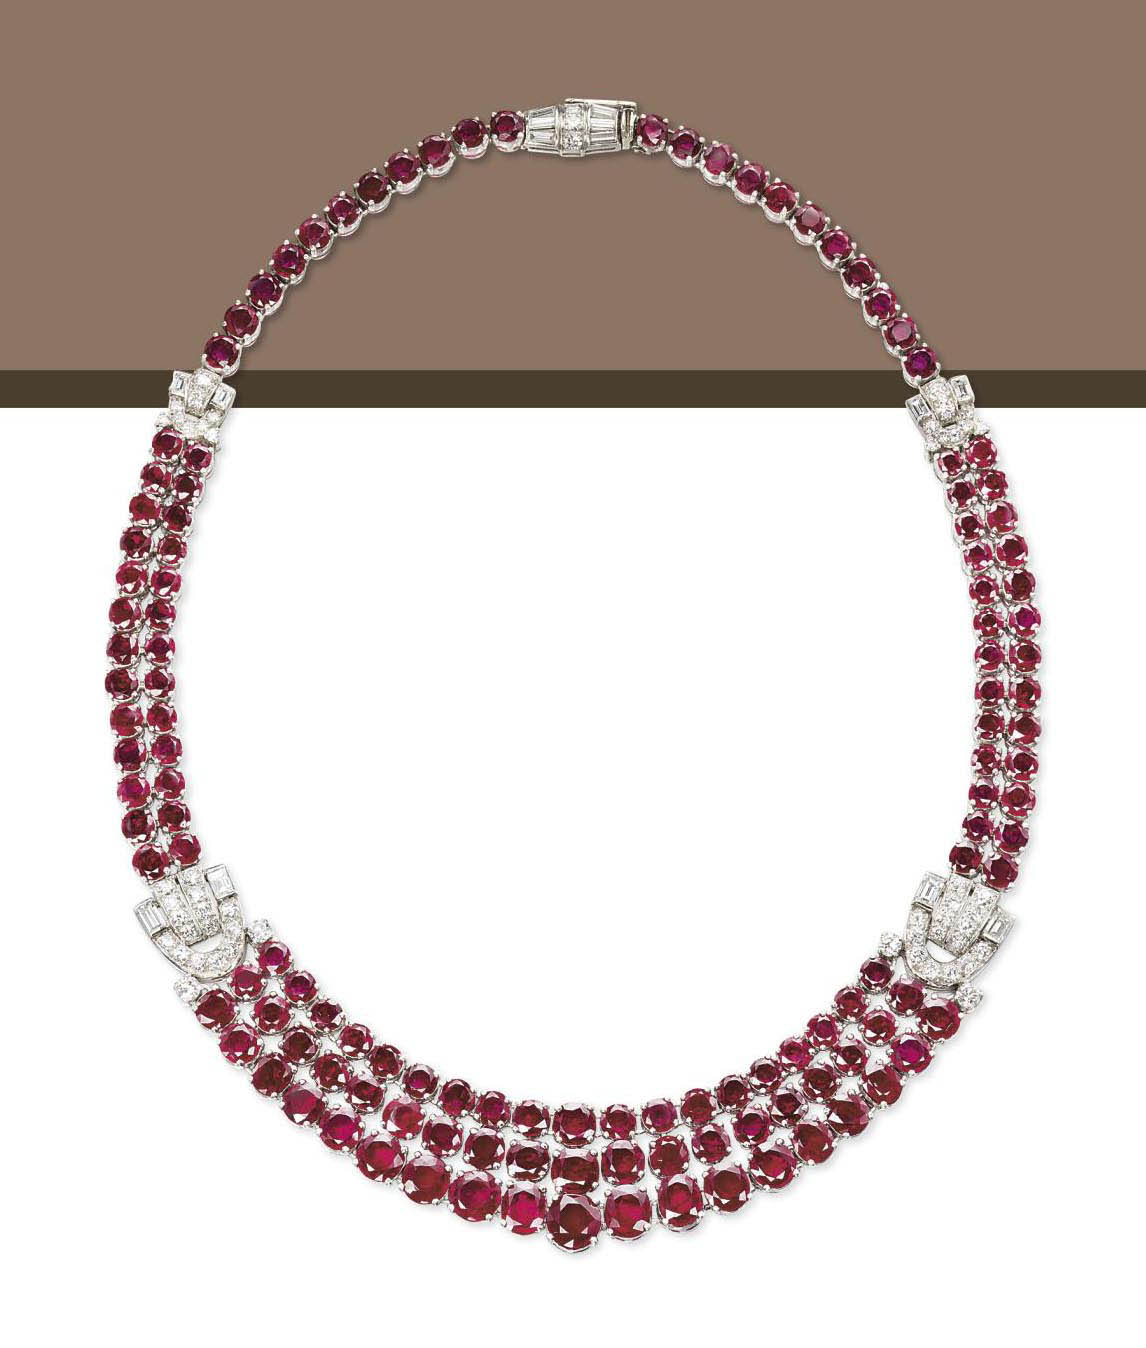 A RUBY AND DIAMOND NECKLACE, BY GAZDAR